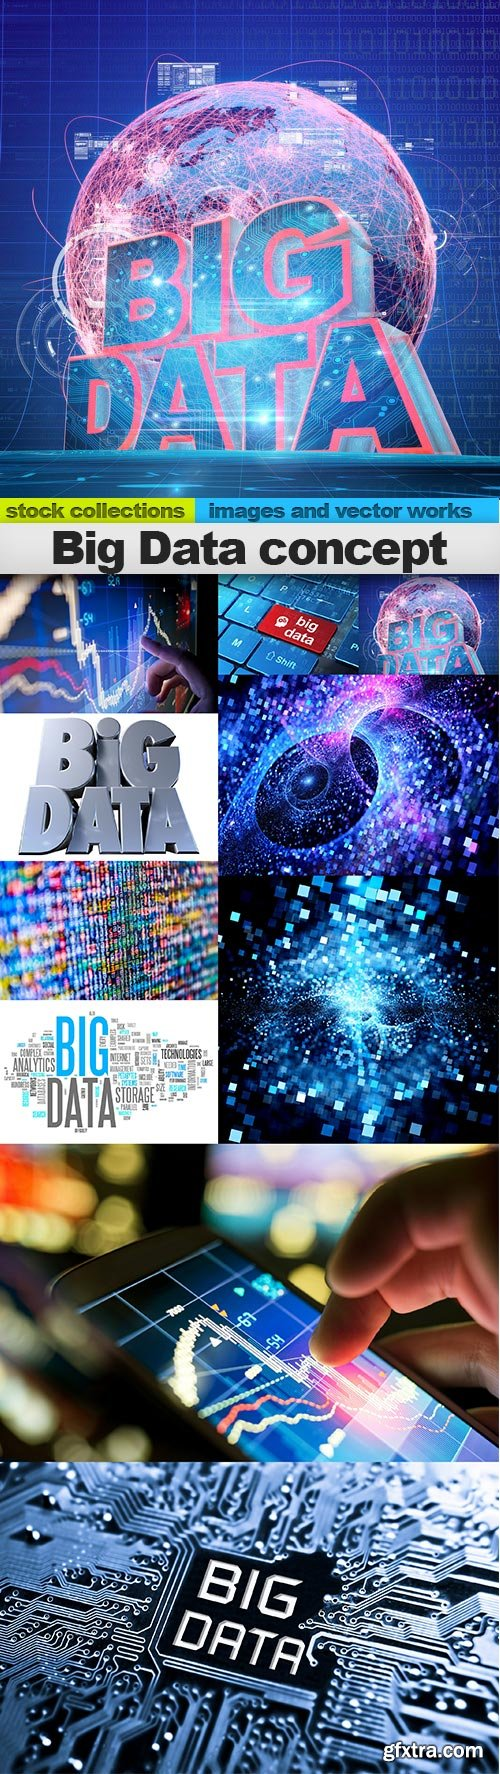 Big Data concept, 10 x UHQ JPEG